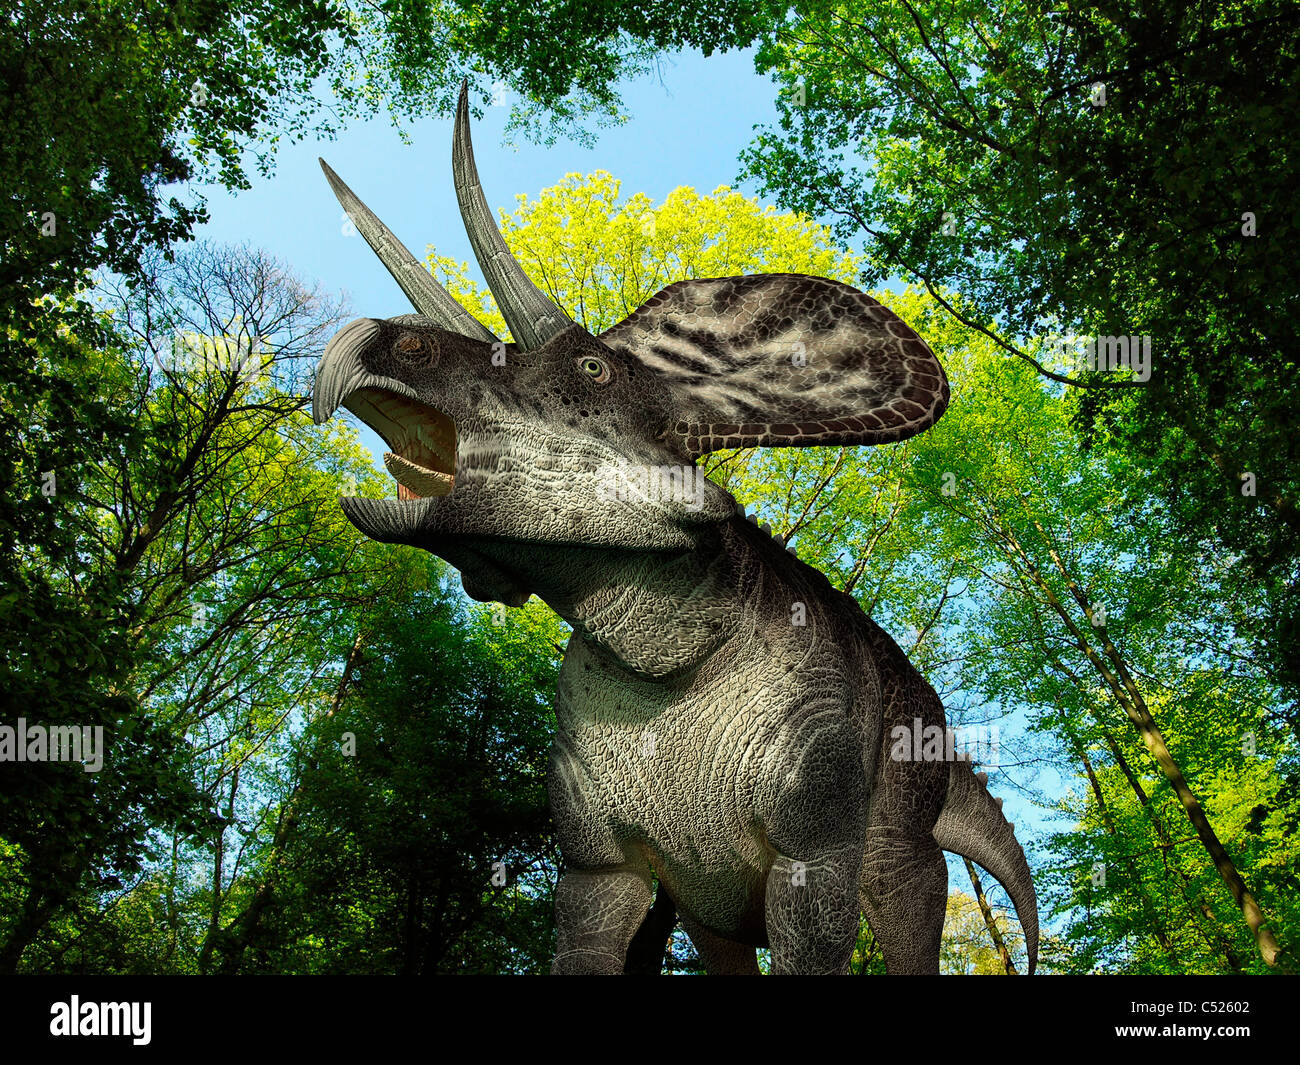 A Zuniceratops wanders a Cretaceous forest. - Stock Image